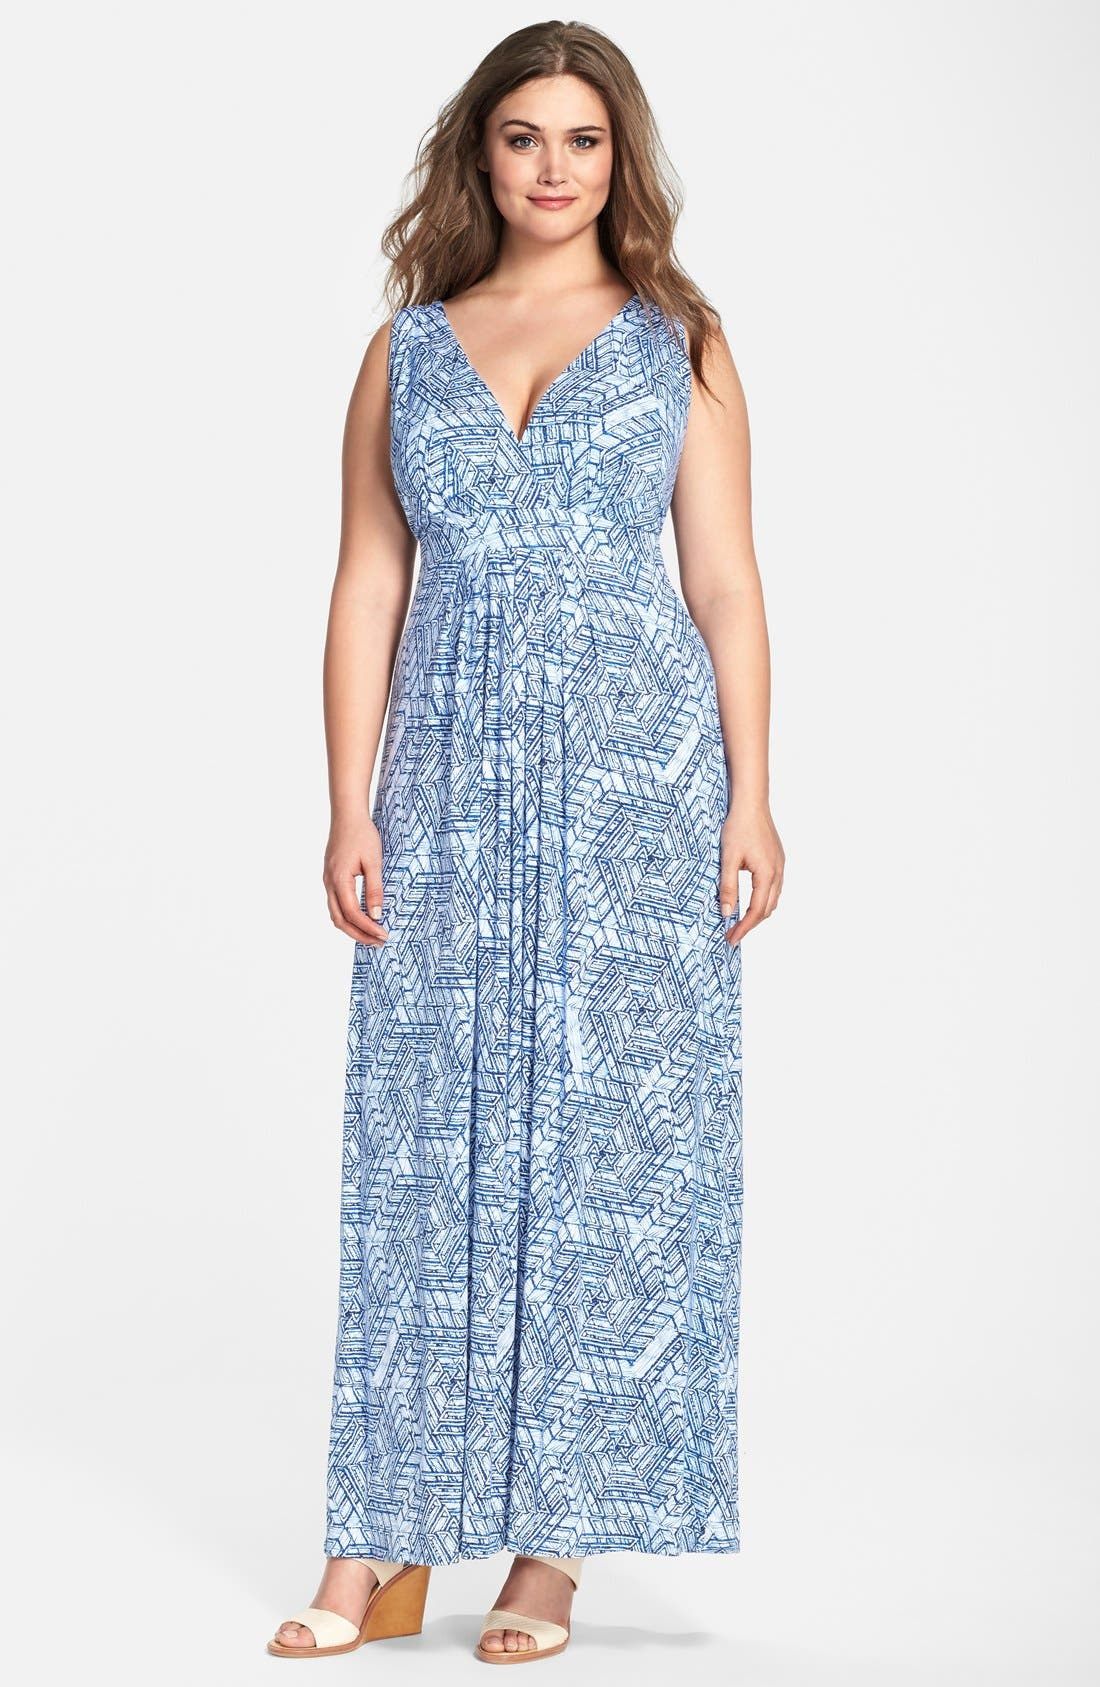 Chloe Empire Waist Maxi Dress,                             Main thumbnail 14, color,